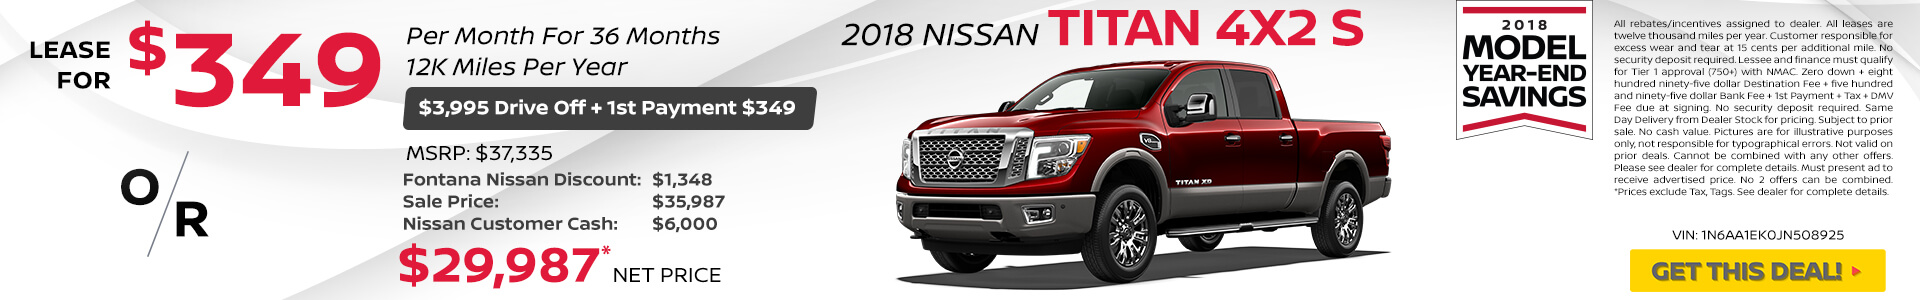 Nissan Titan #349 Lease $29,987 Purchase